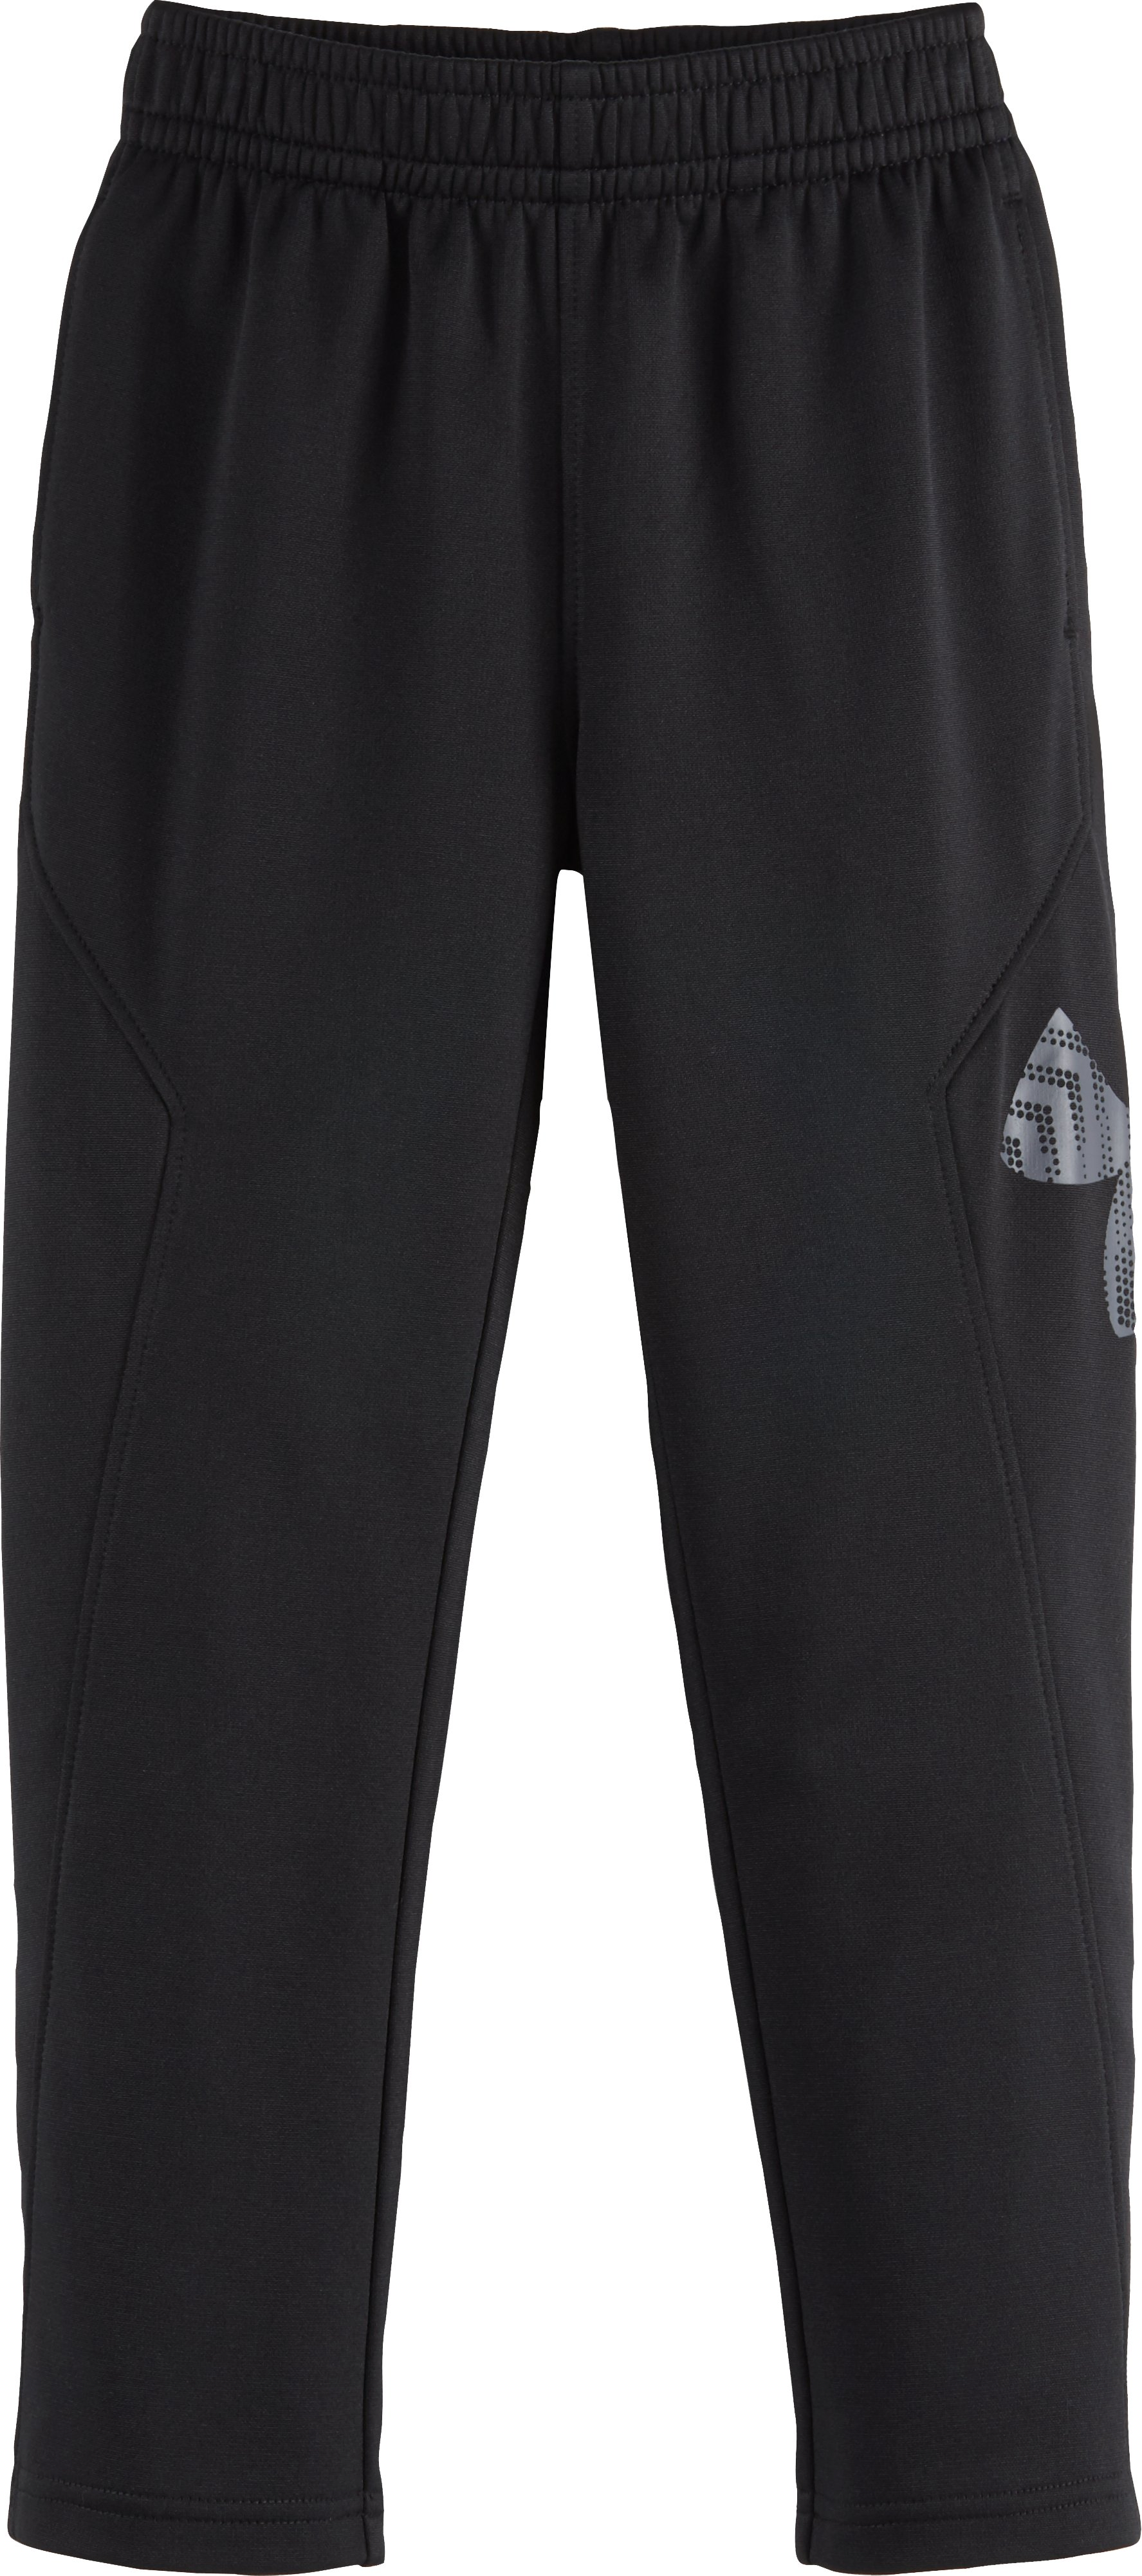 Boys' Pre-School UA Big Logo Pants, Black , Laydown